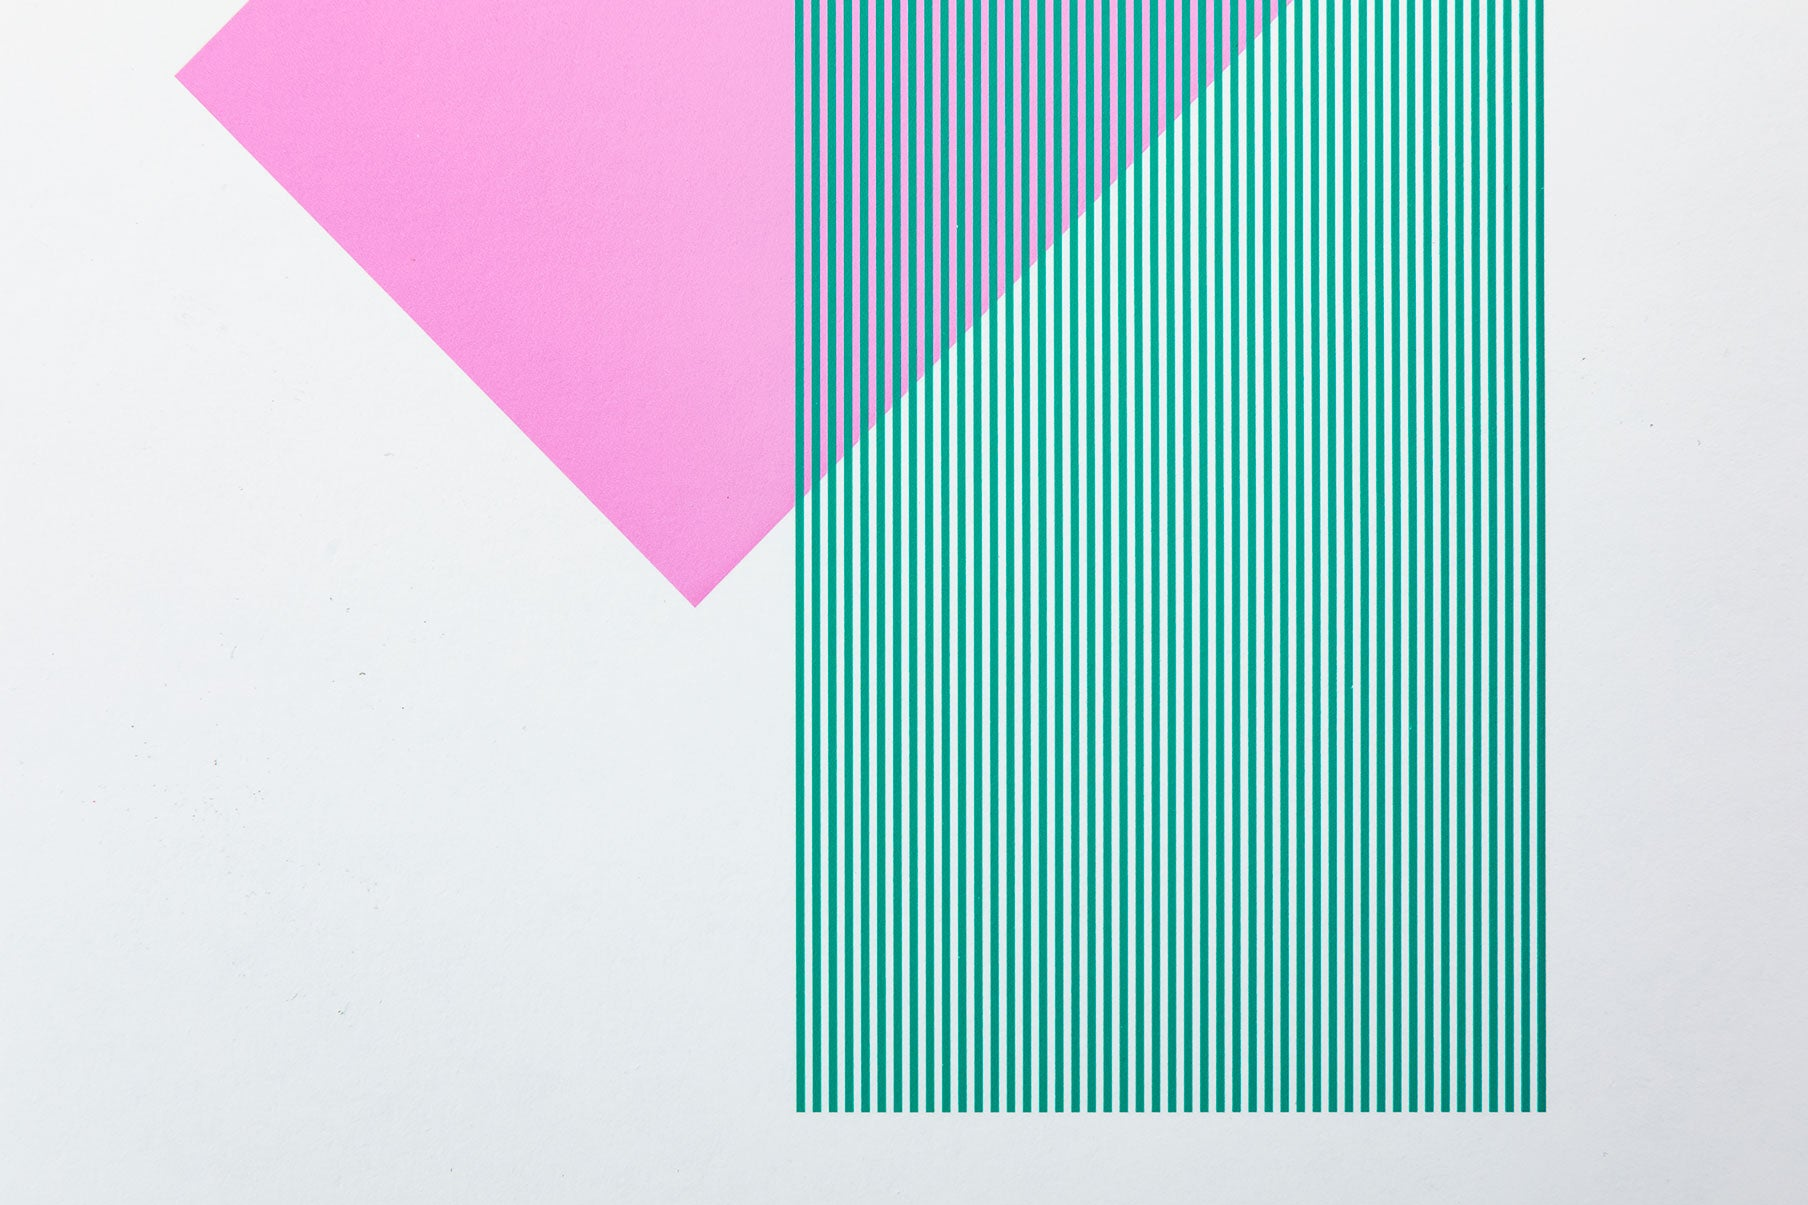 Solids & Strokes – Small – Bright Pink & Teal